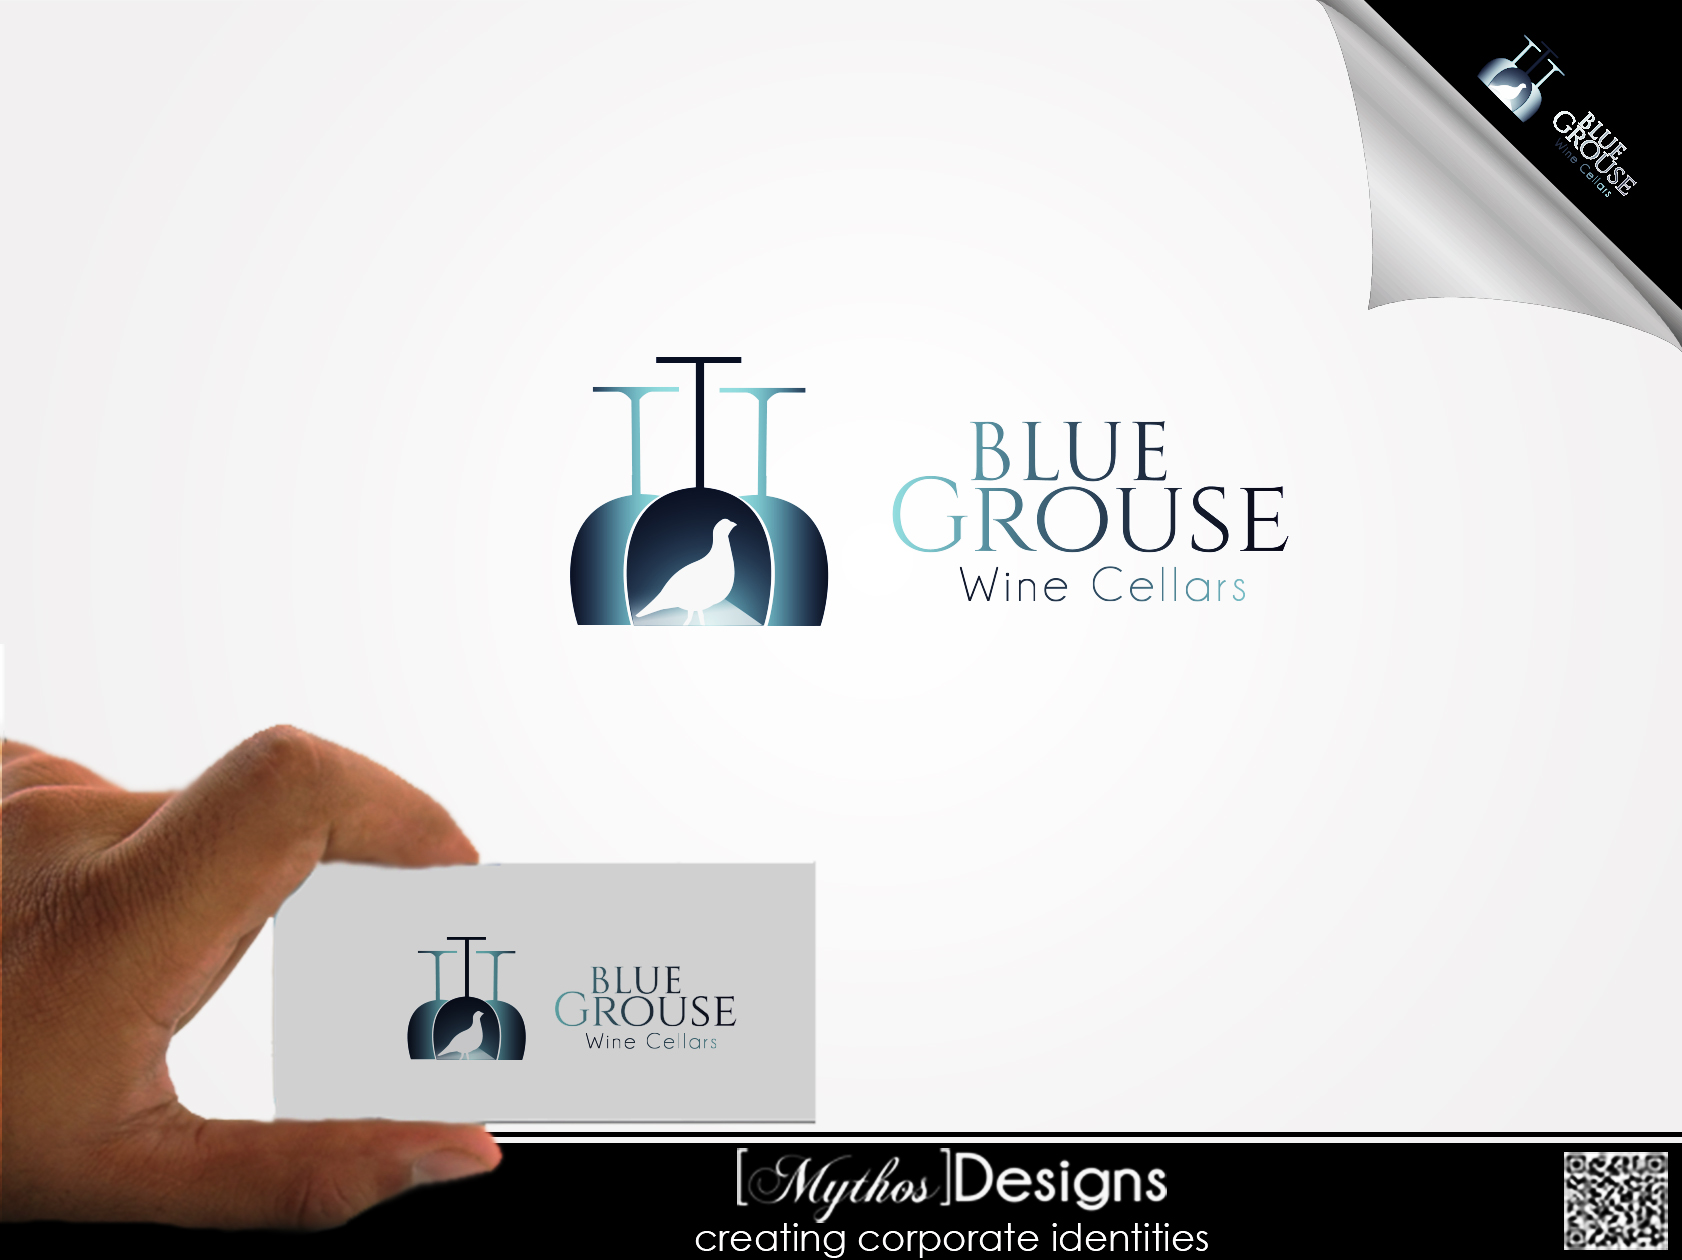 Logo Design by Mythos Designs - Entry No. 172 in the Logo Design Contest Creative Logo Design for Blue Grouse Wine Cellars.